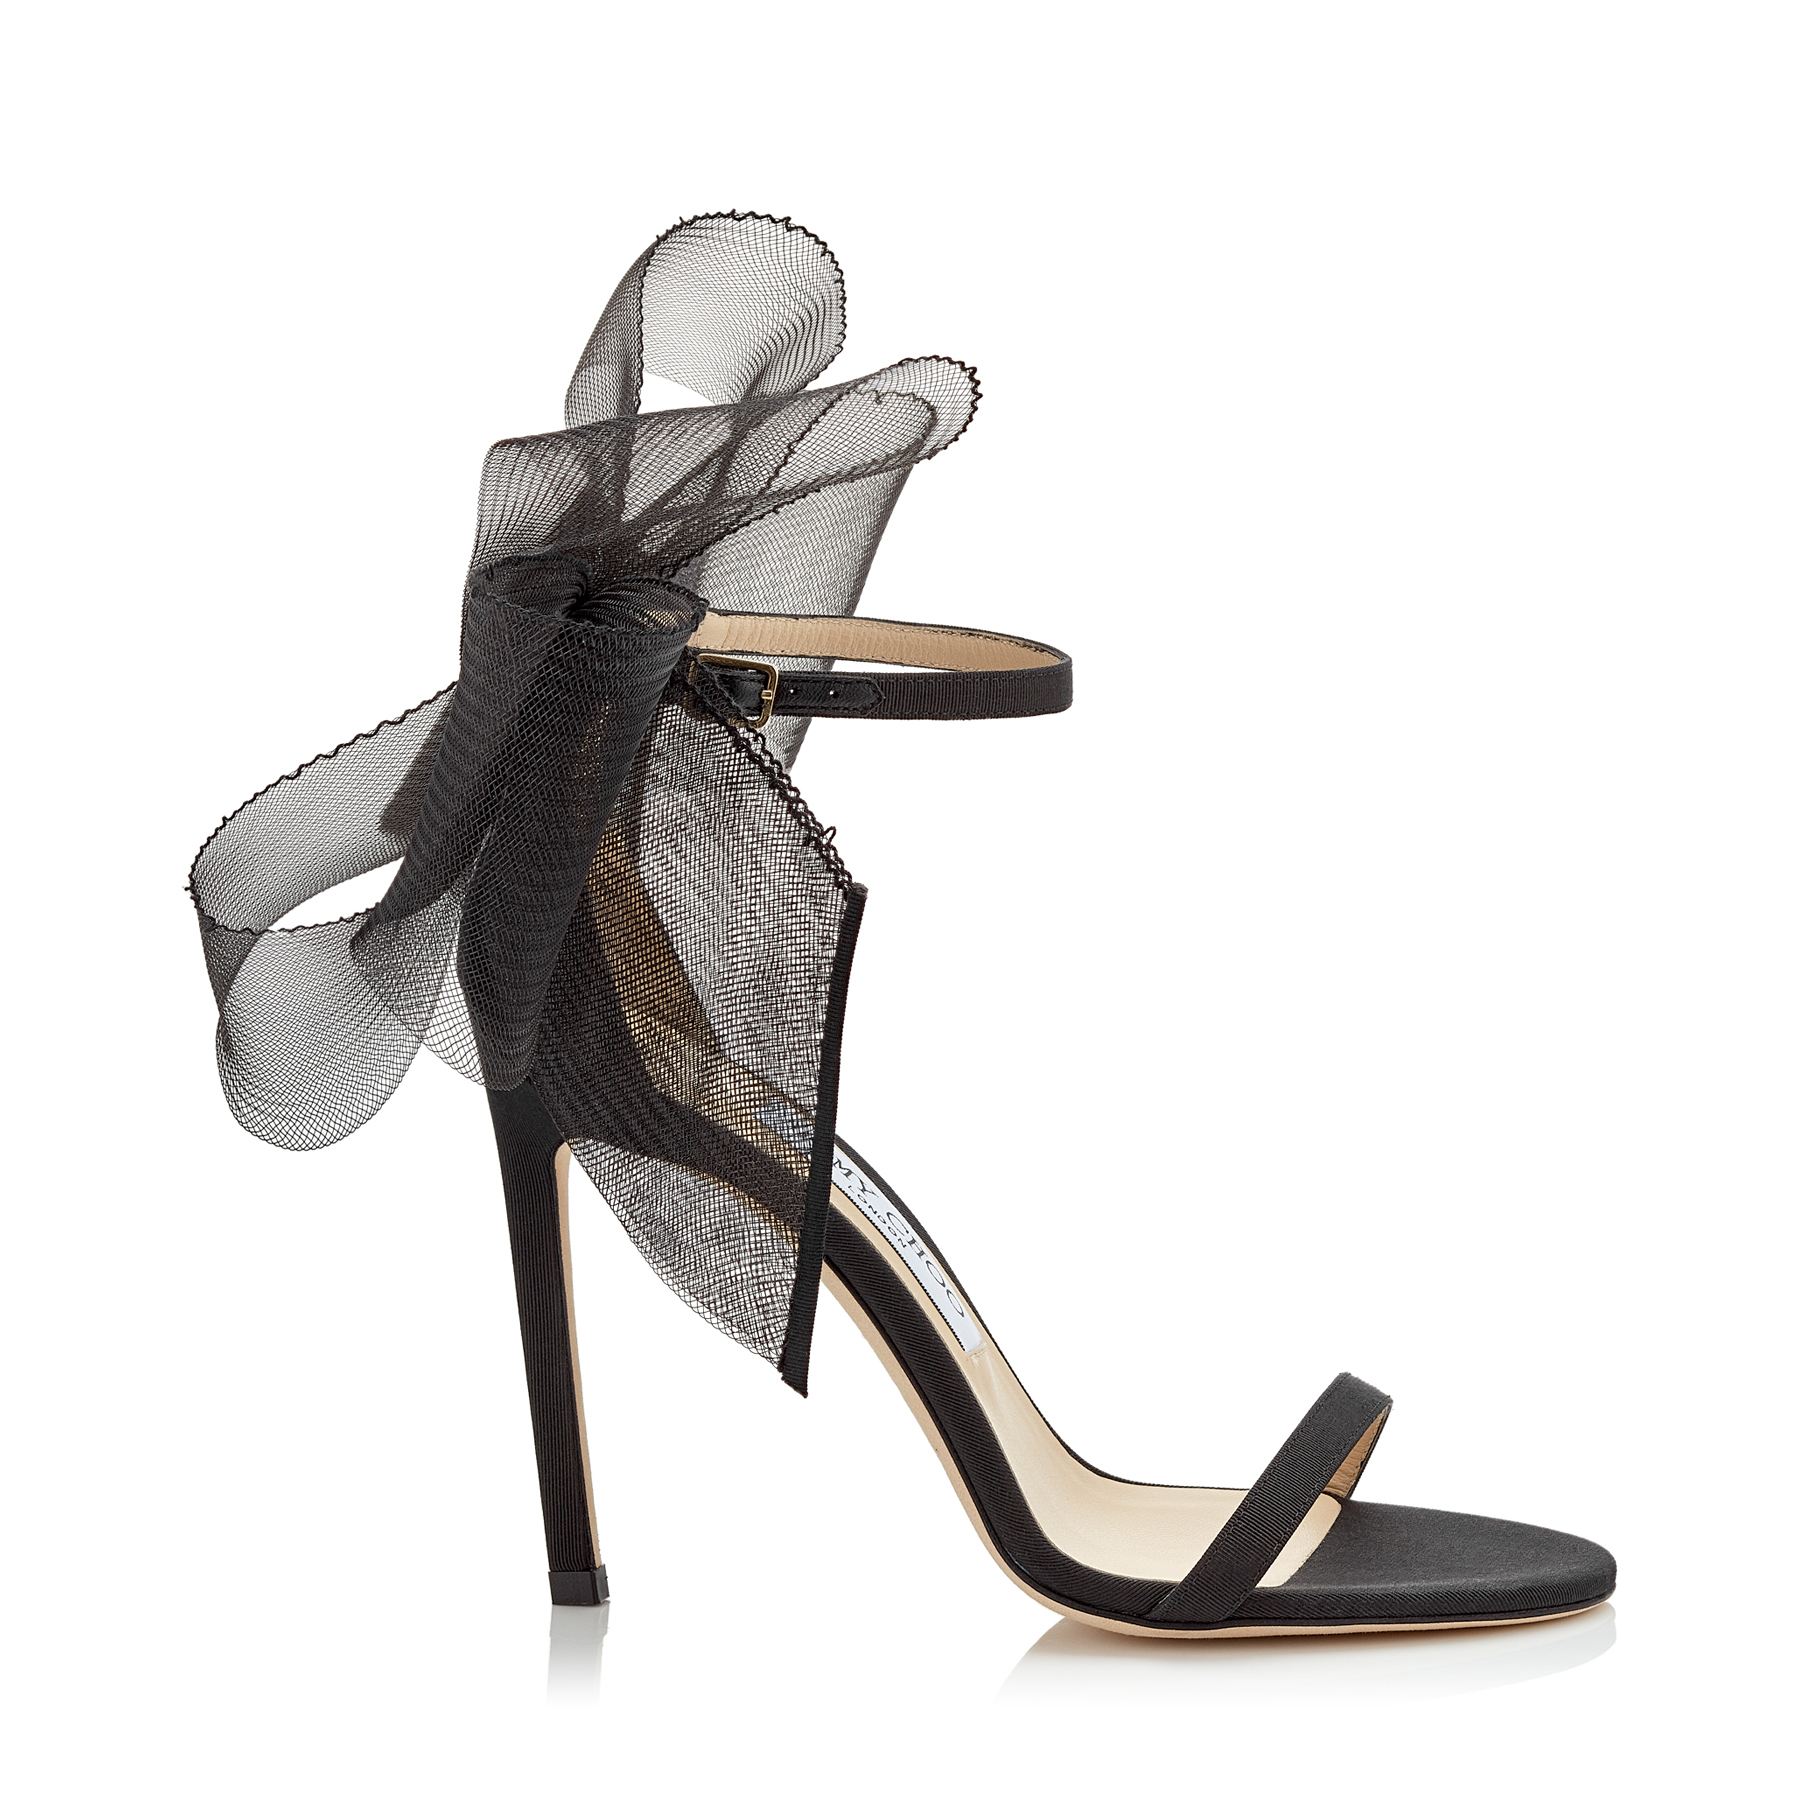 new products 806c3 db3d2 JIMMY CHOO - Official Online Boutique   Shop Luxury Shoes, Bags and  Accessories